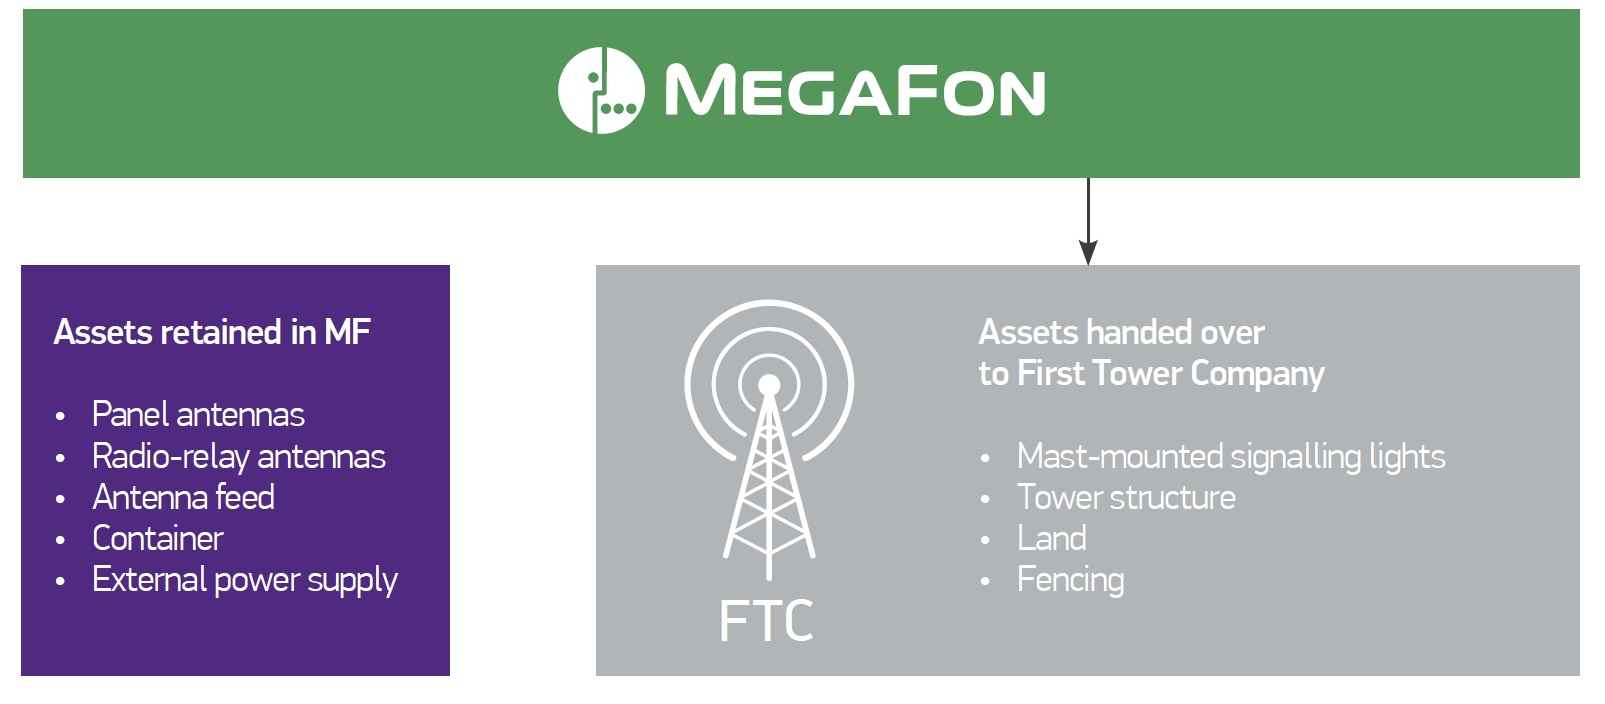 How to turn off the answering machine on Megafon: the management of the Voice Mail service